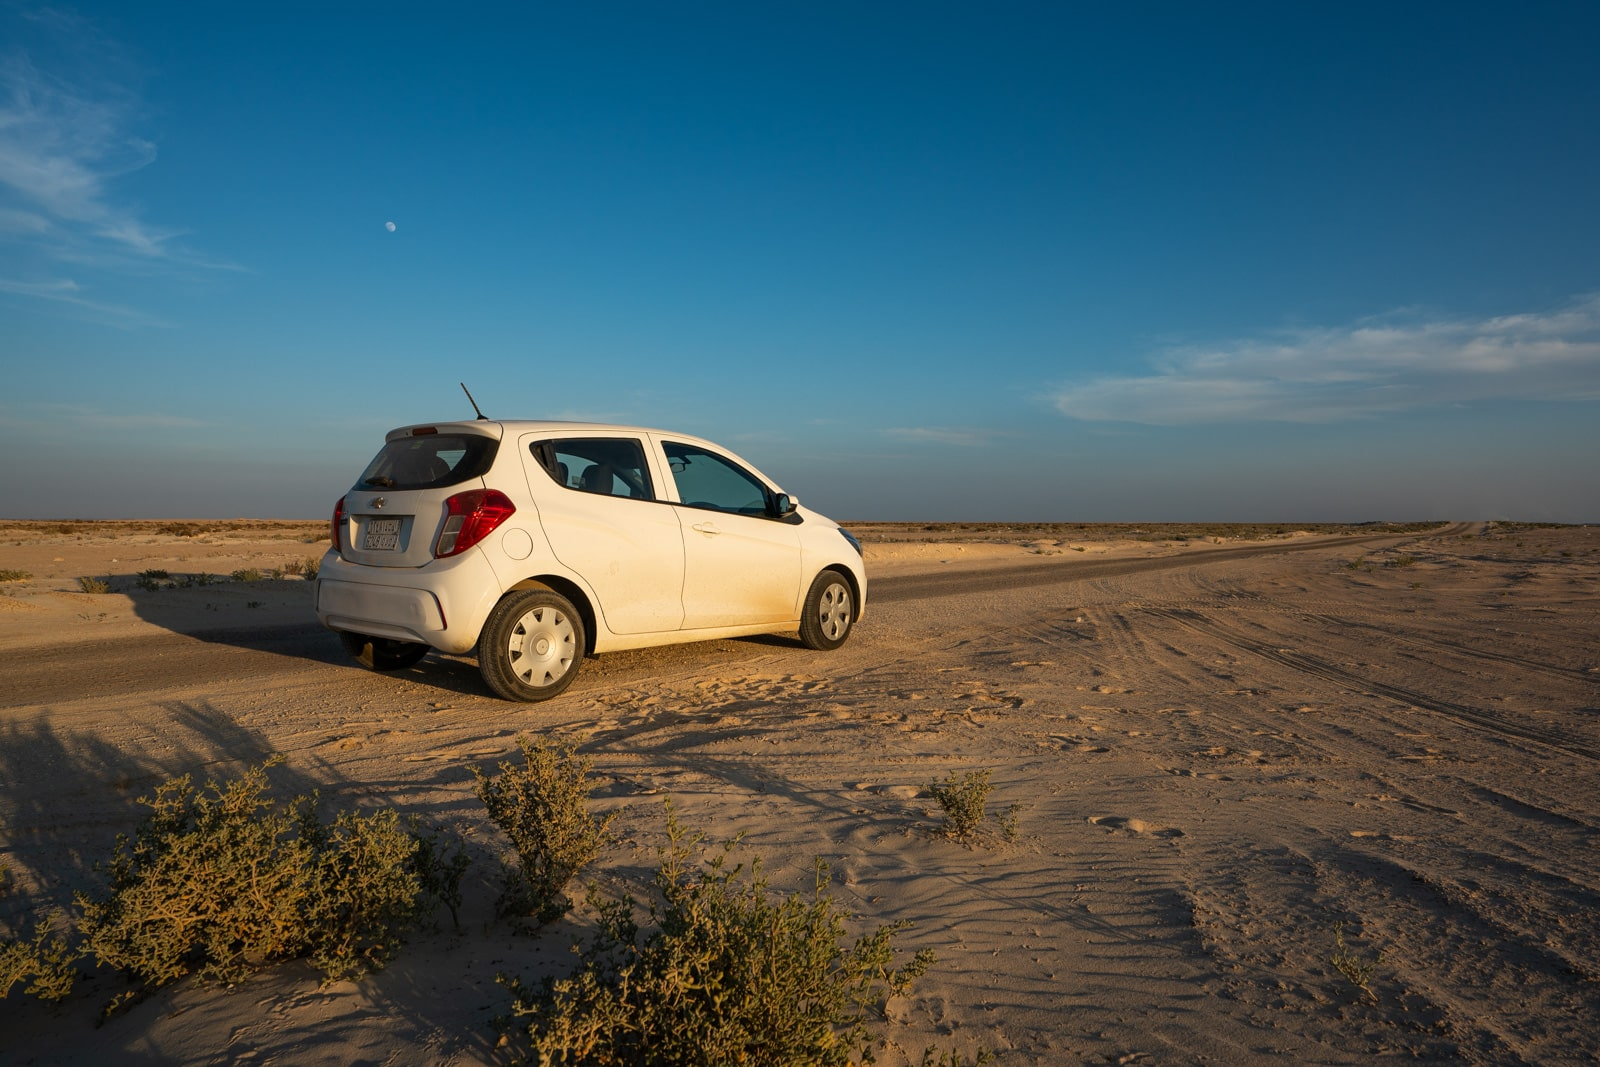 Chevorlet Spark rented in Saudi Arabia for a road trip